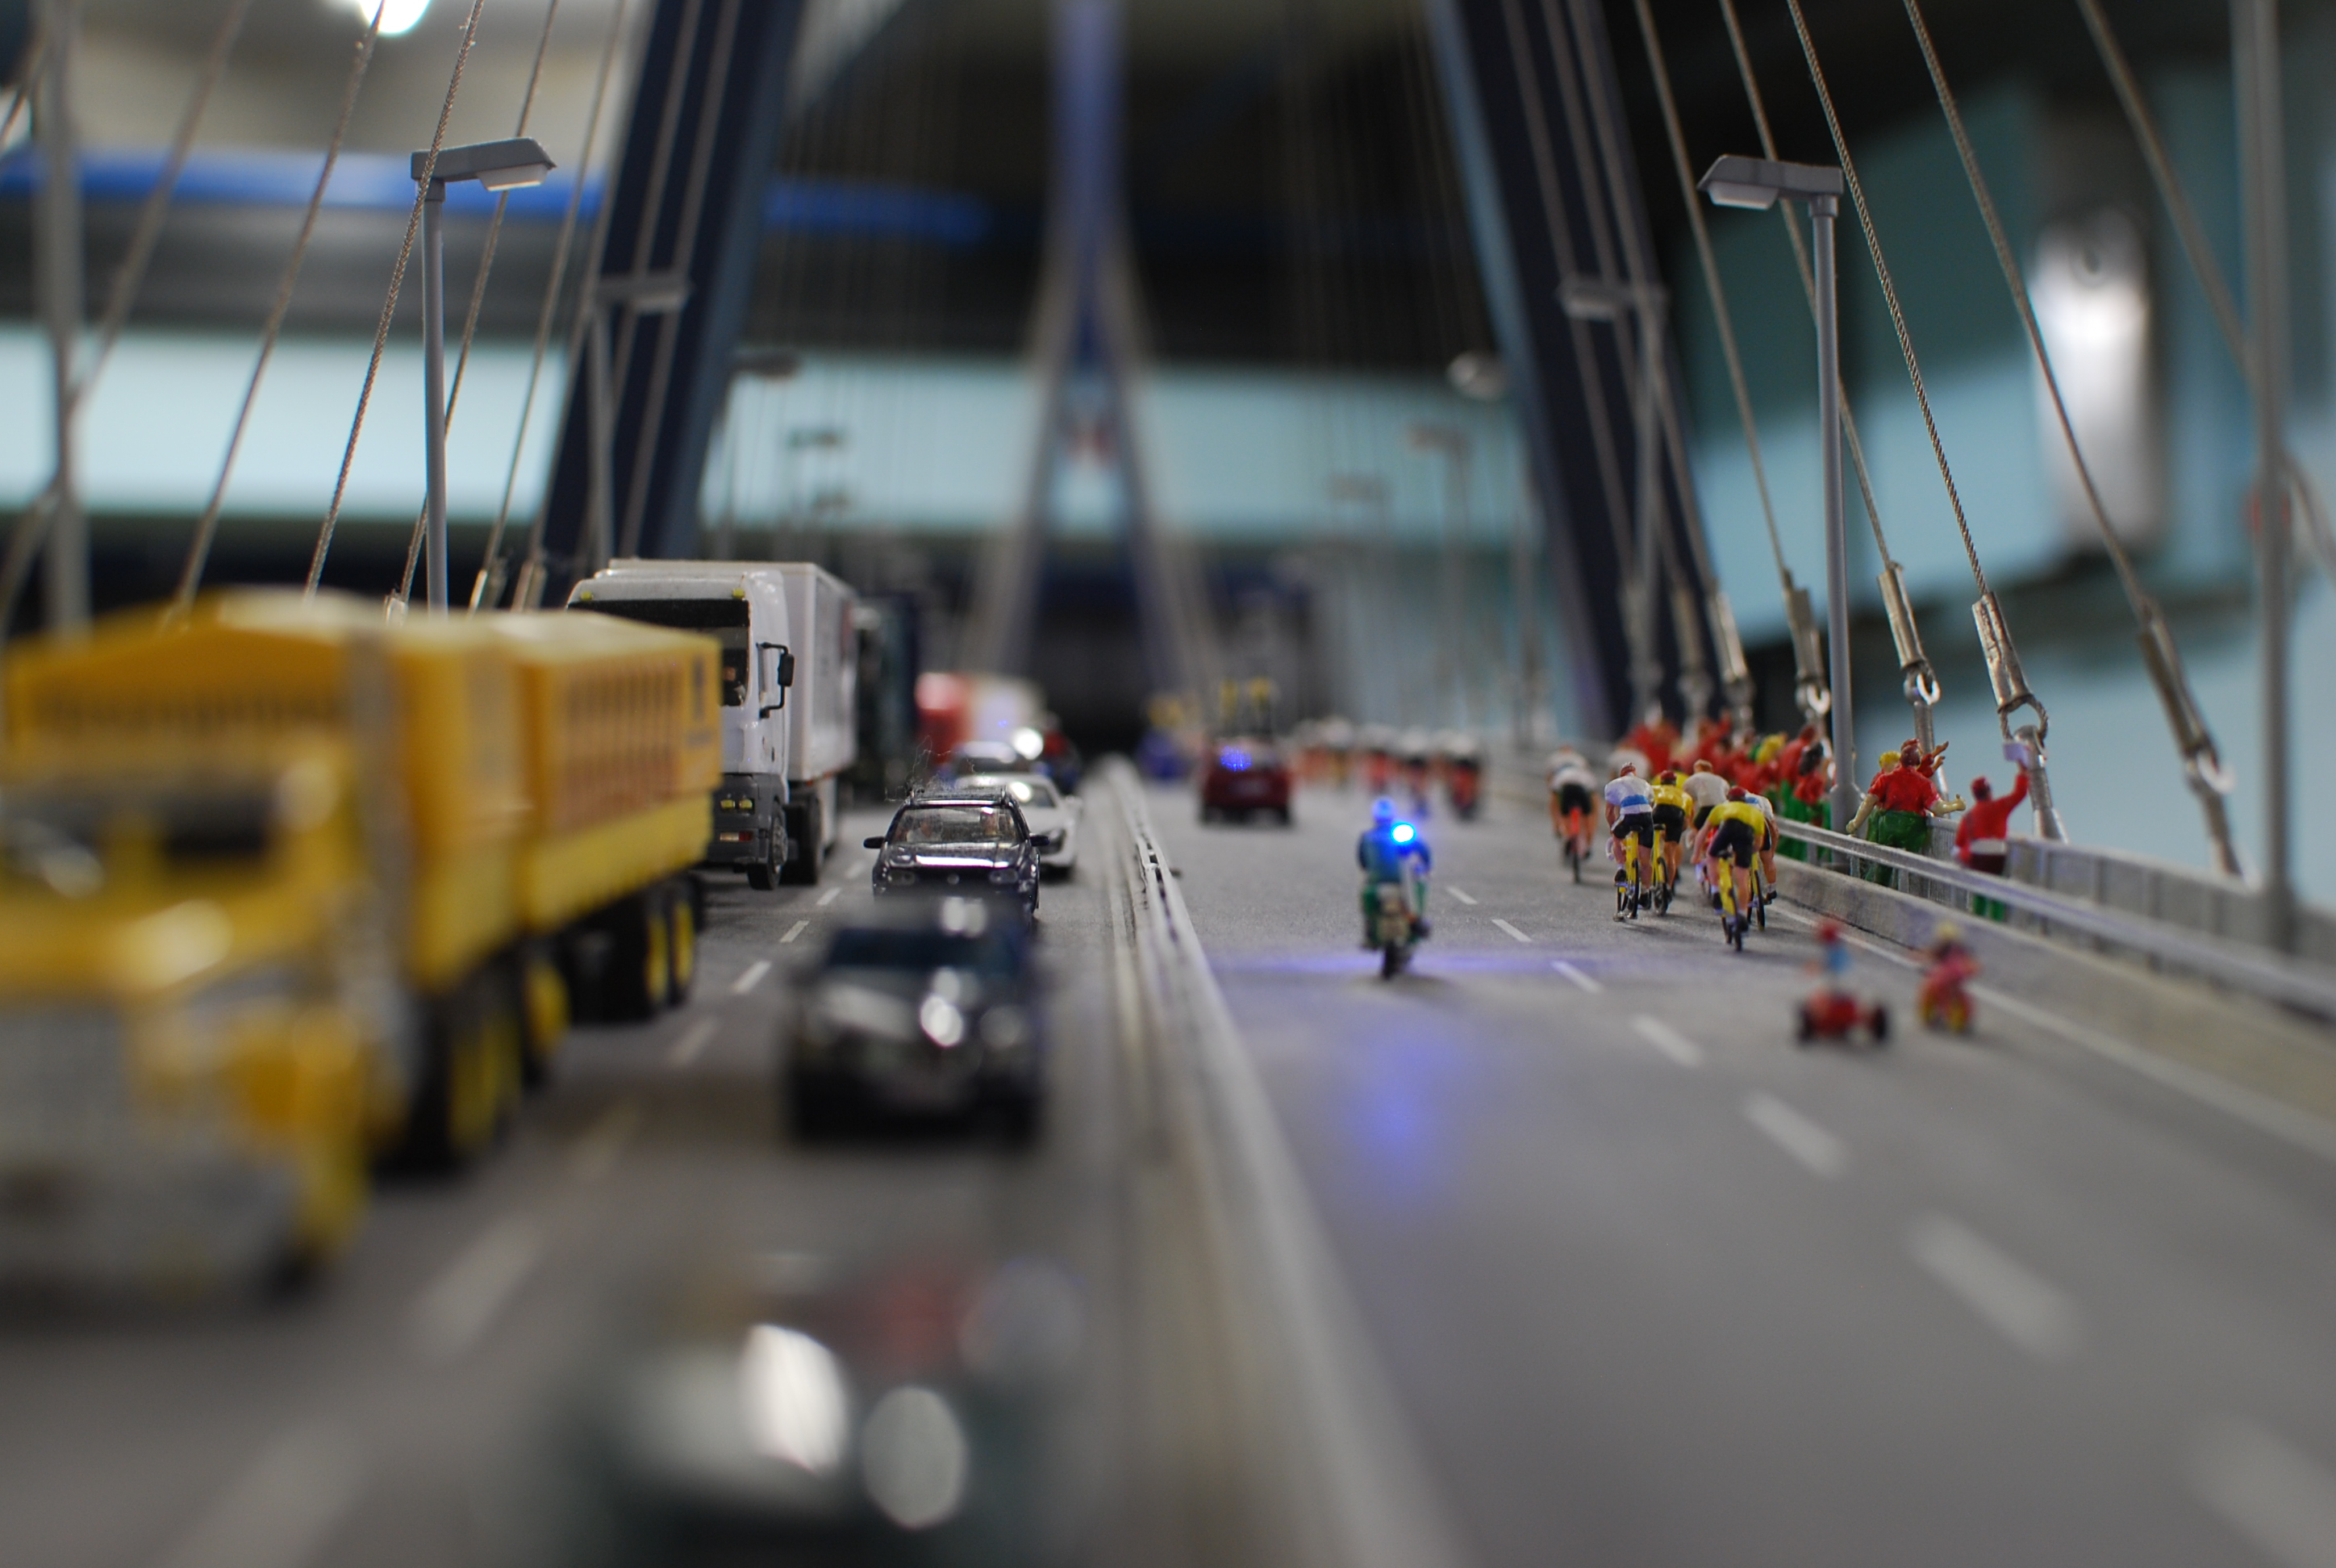 9.00 am – We're off to Miniatur Wunderland!